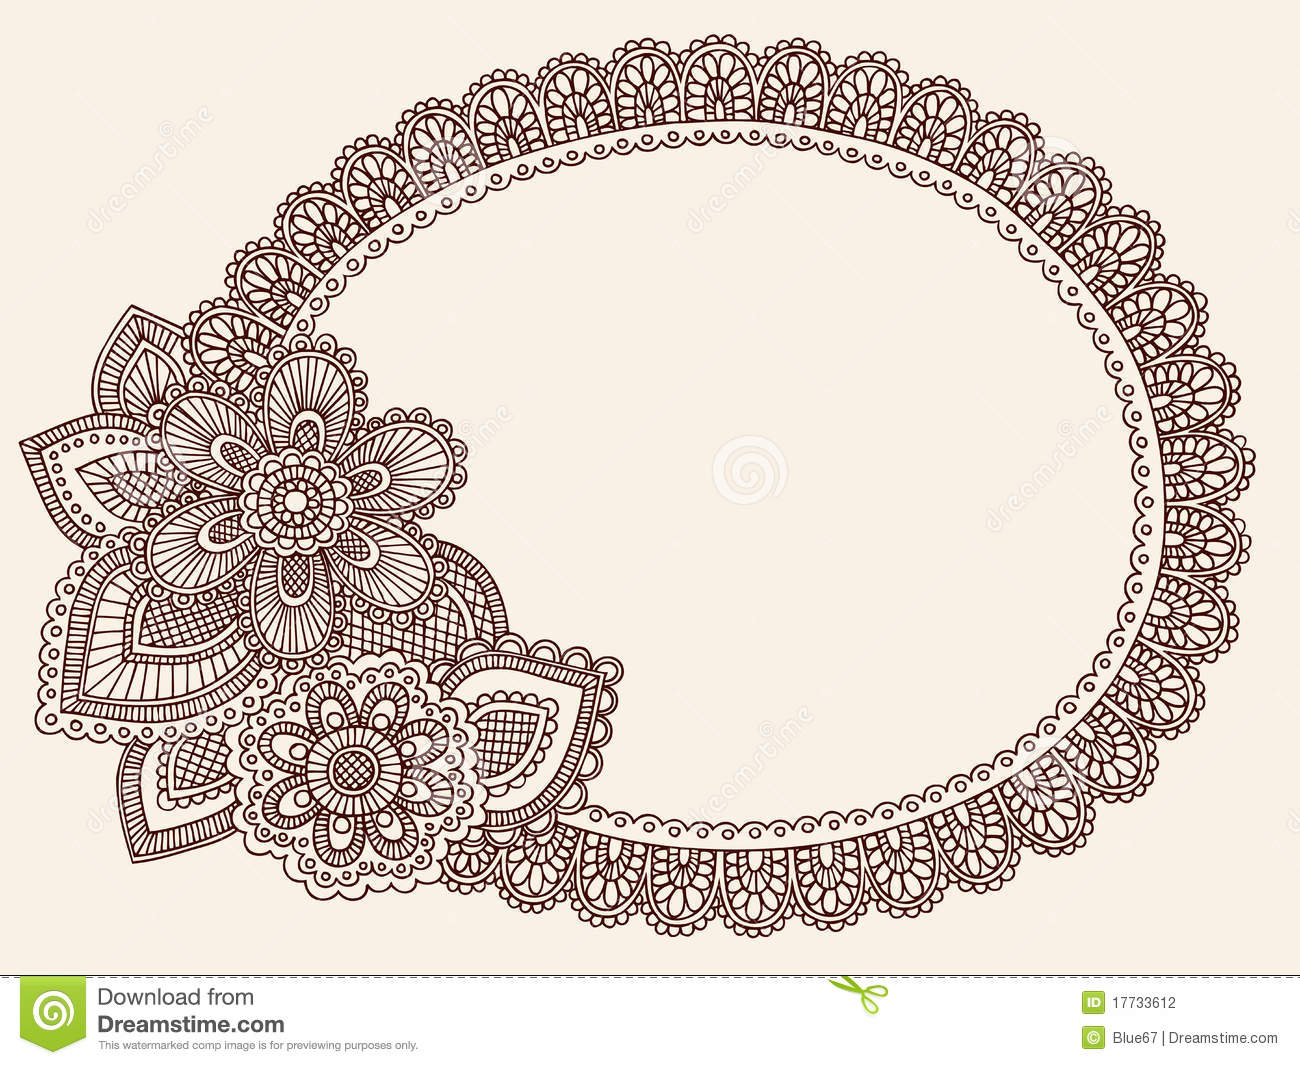 Abstract henna mehndi lace doily paisley flower doodle frame vector